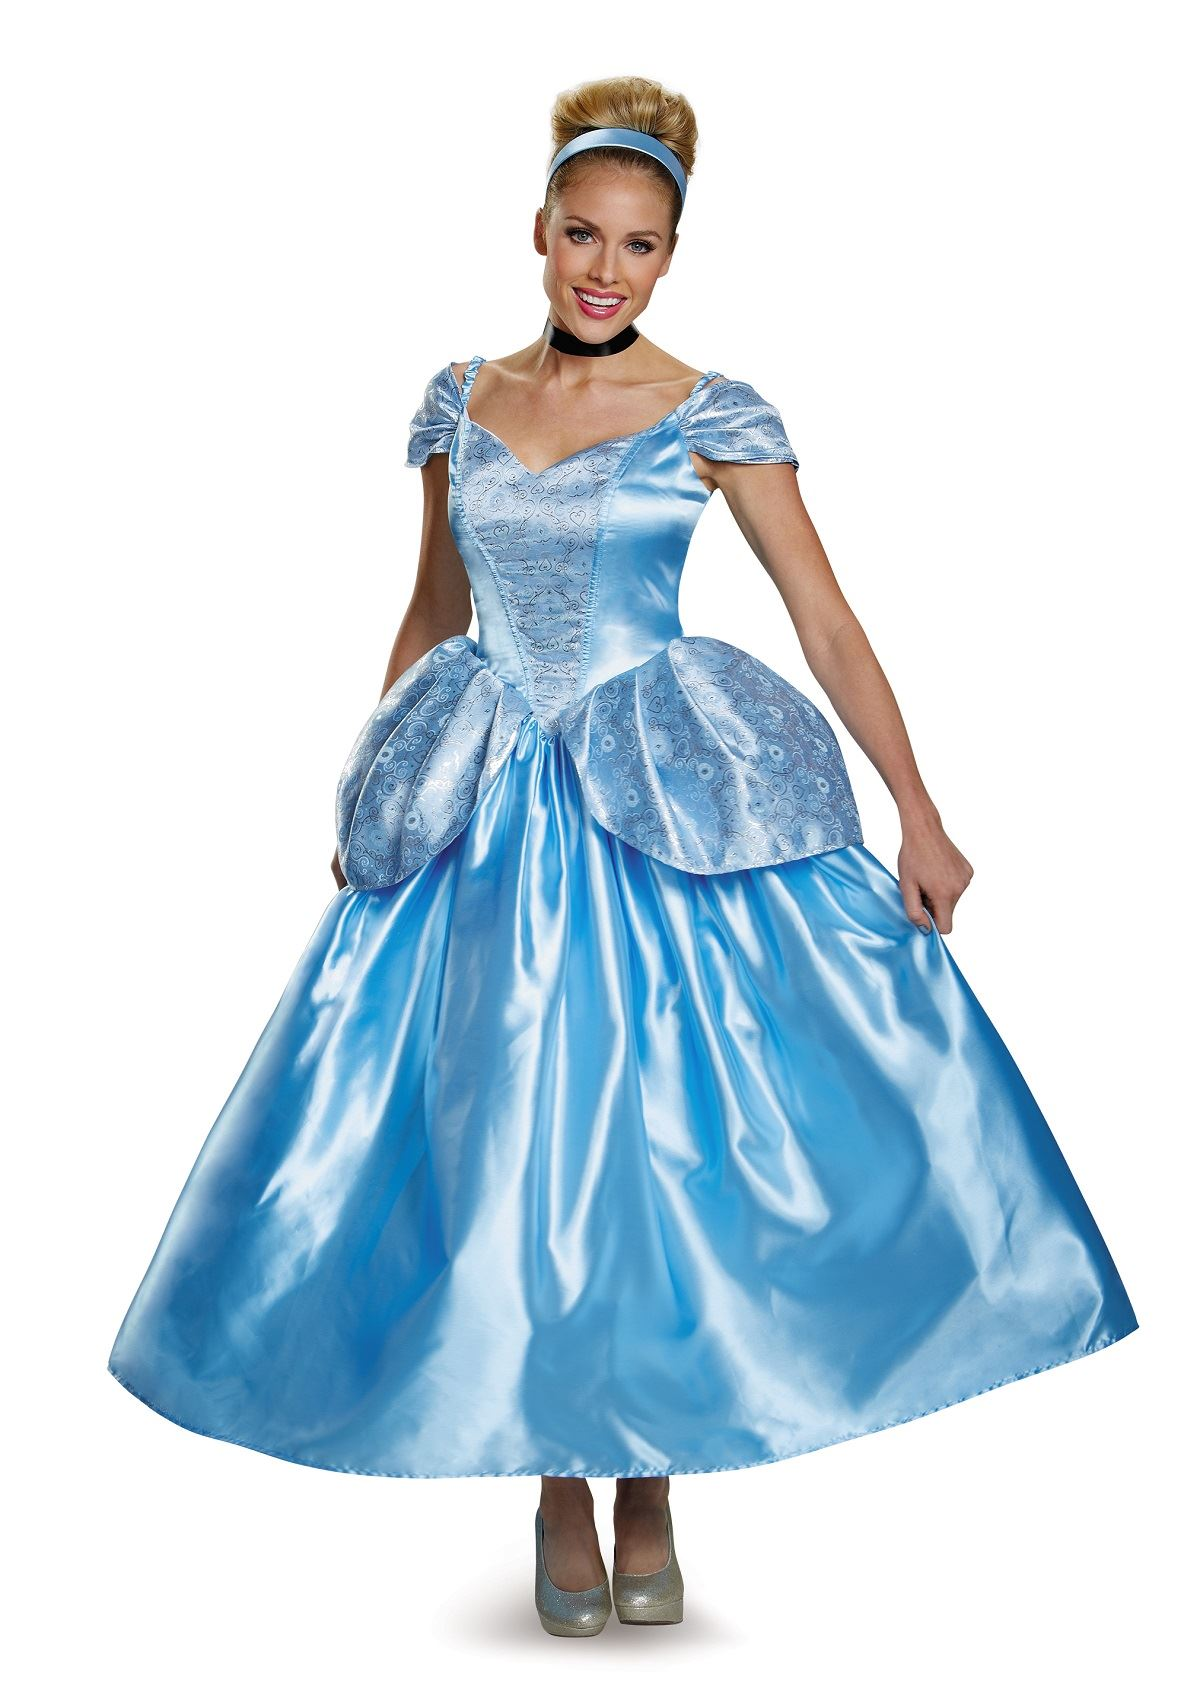 womens fairy tales costumes halloween costumes | buy womens fairy